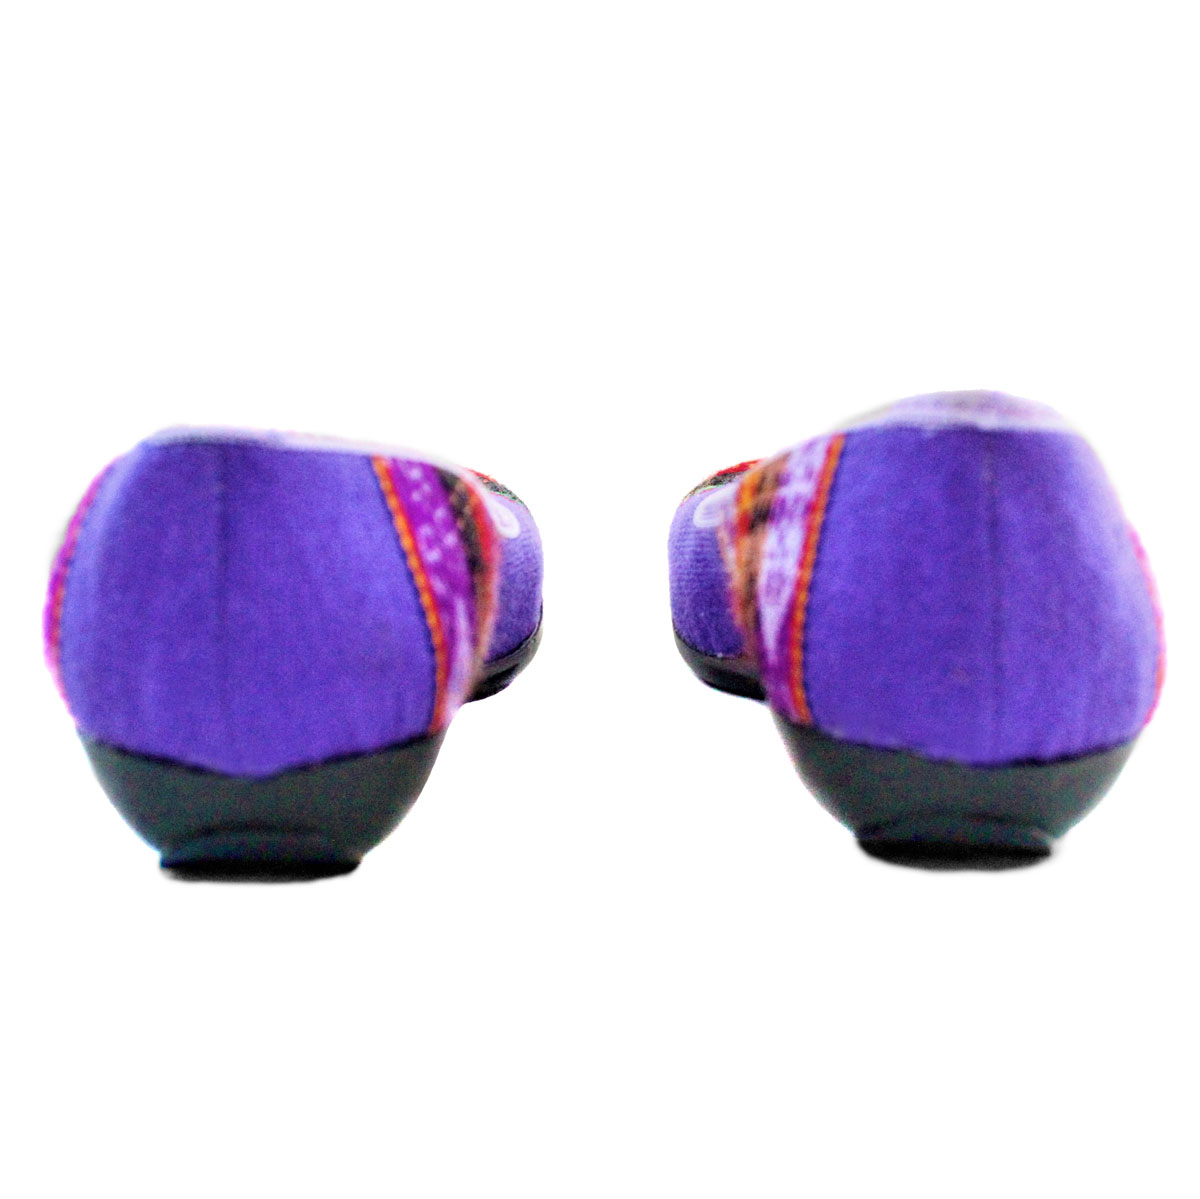 Inka-Products-Ballerines Péruviennes-Violettes-2